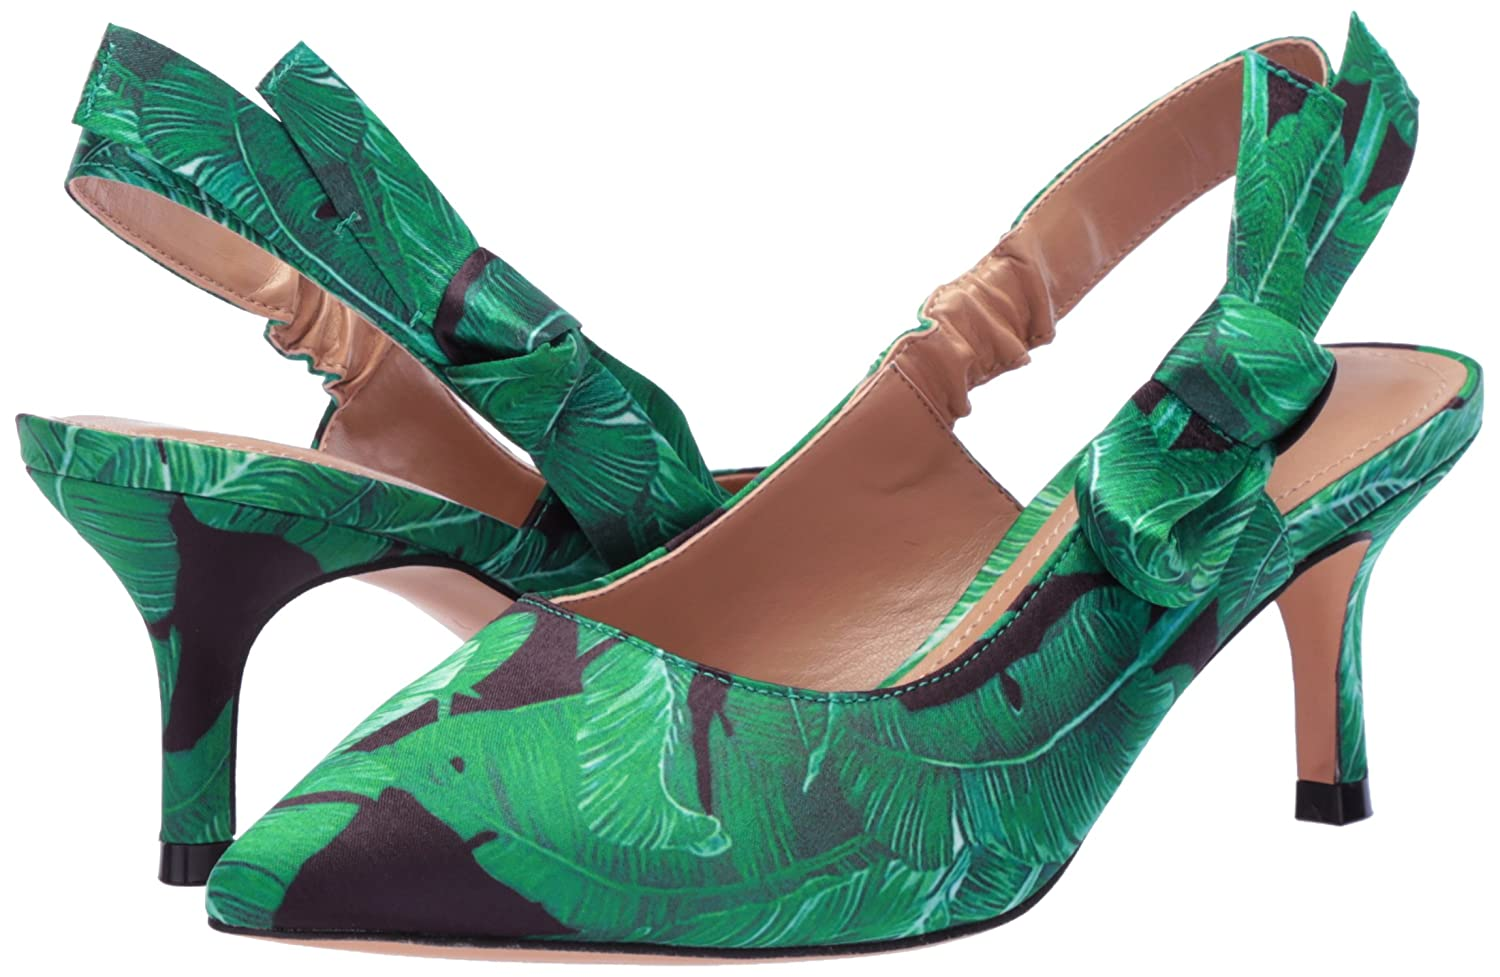 The Fix Women's Fatina Kitten Heel Slingback Pump B076ZVQ1PF 7 B(M) US|Black Leafy Palm Print Satin